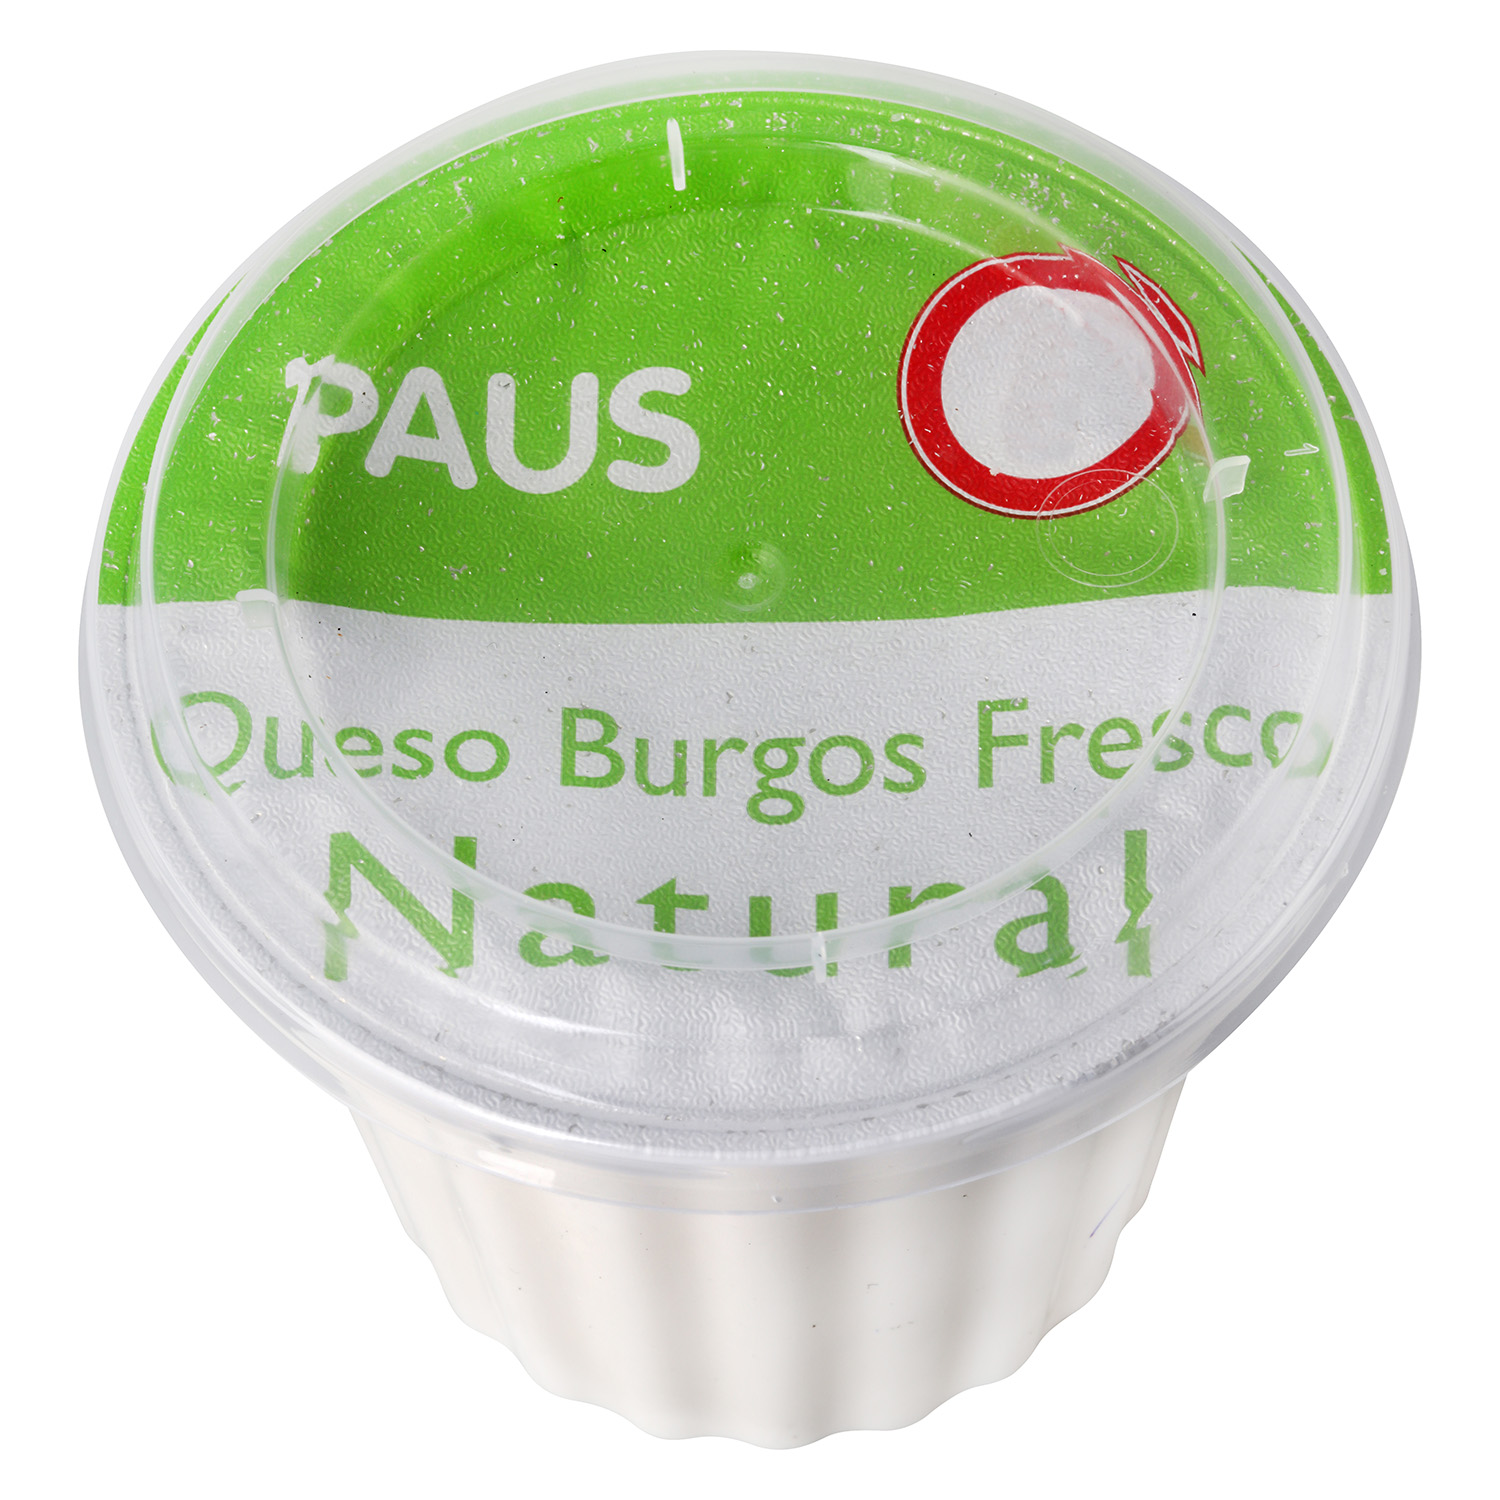 Queso de Burgos fresco natural